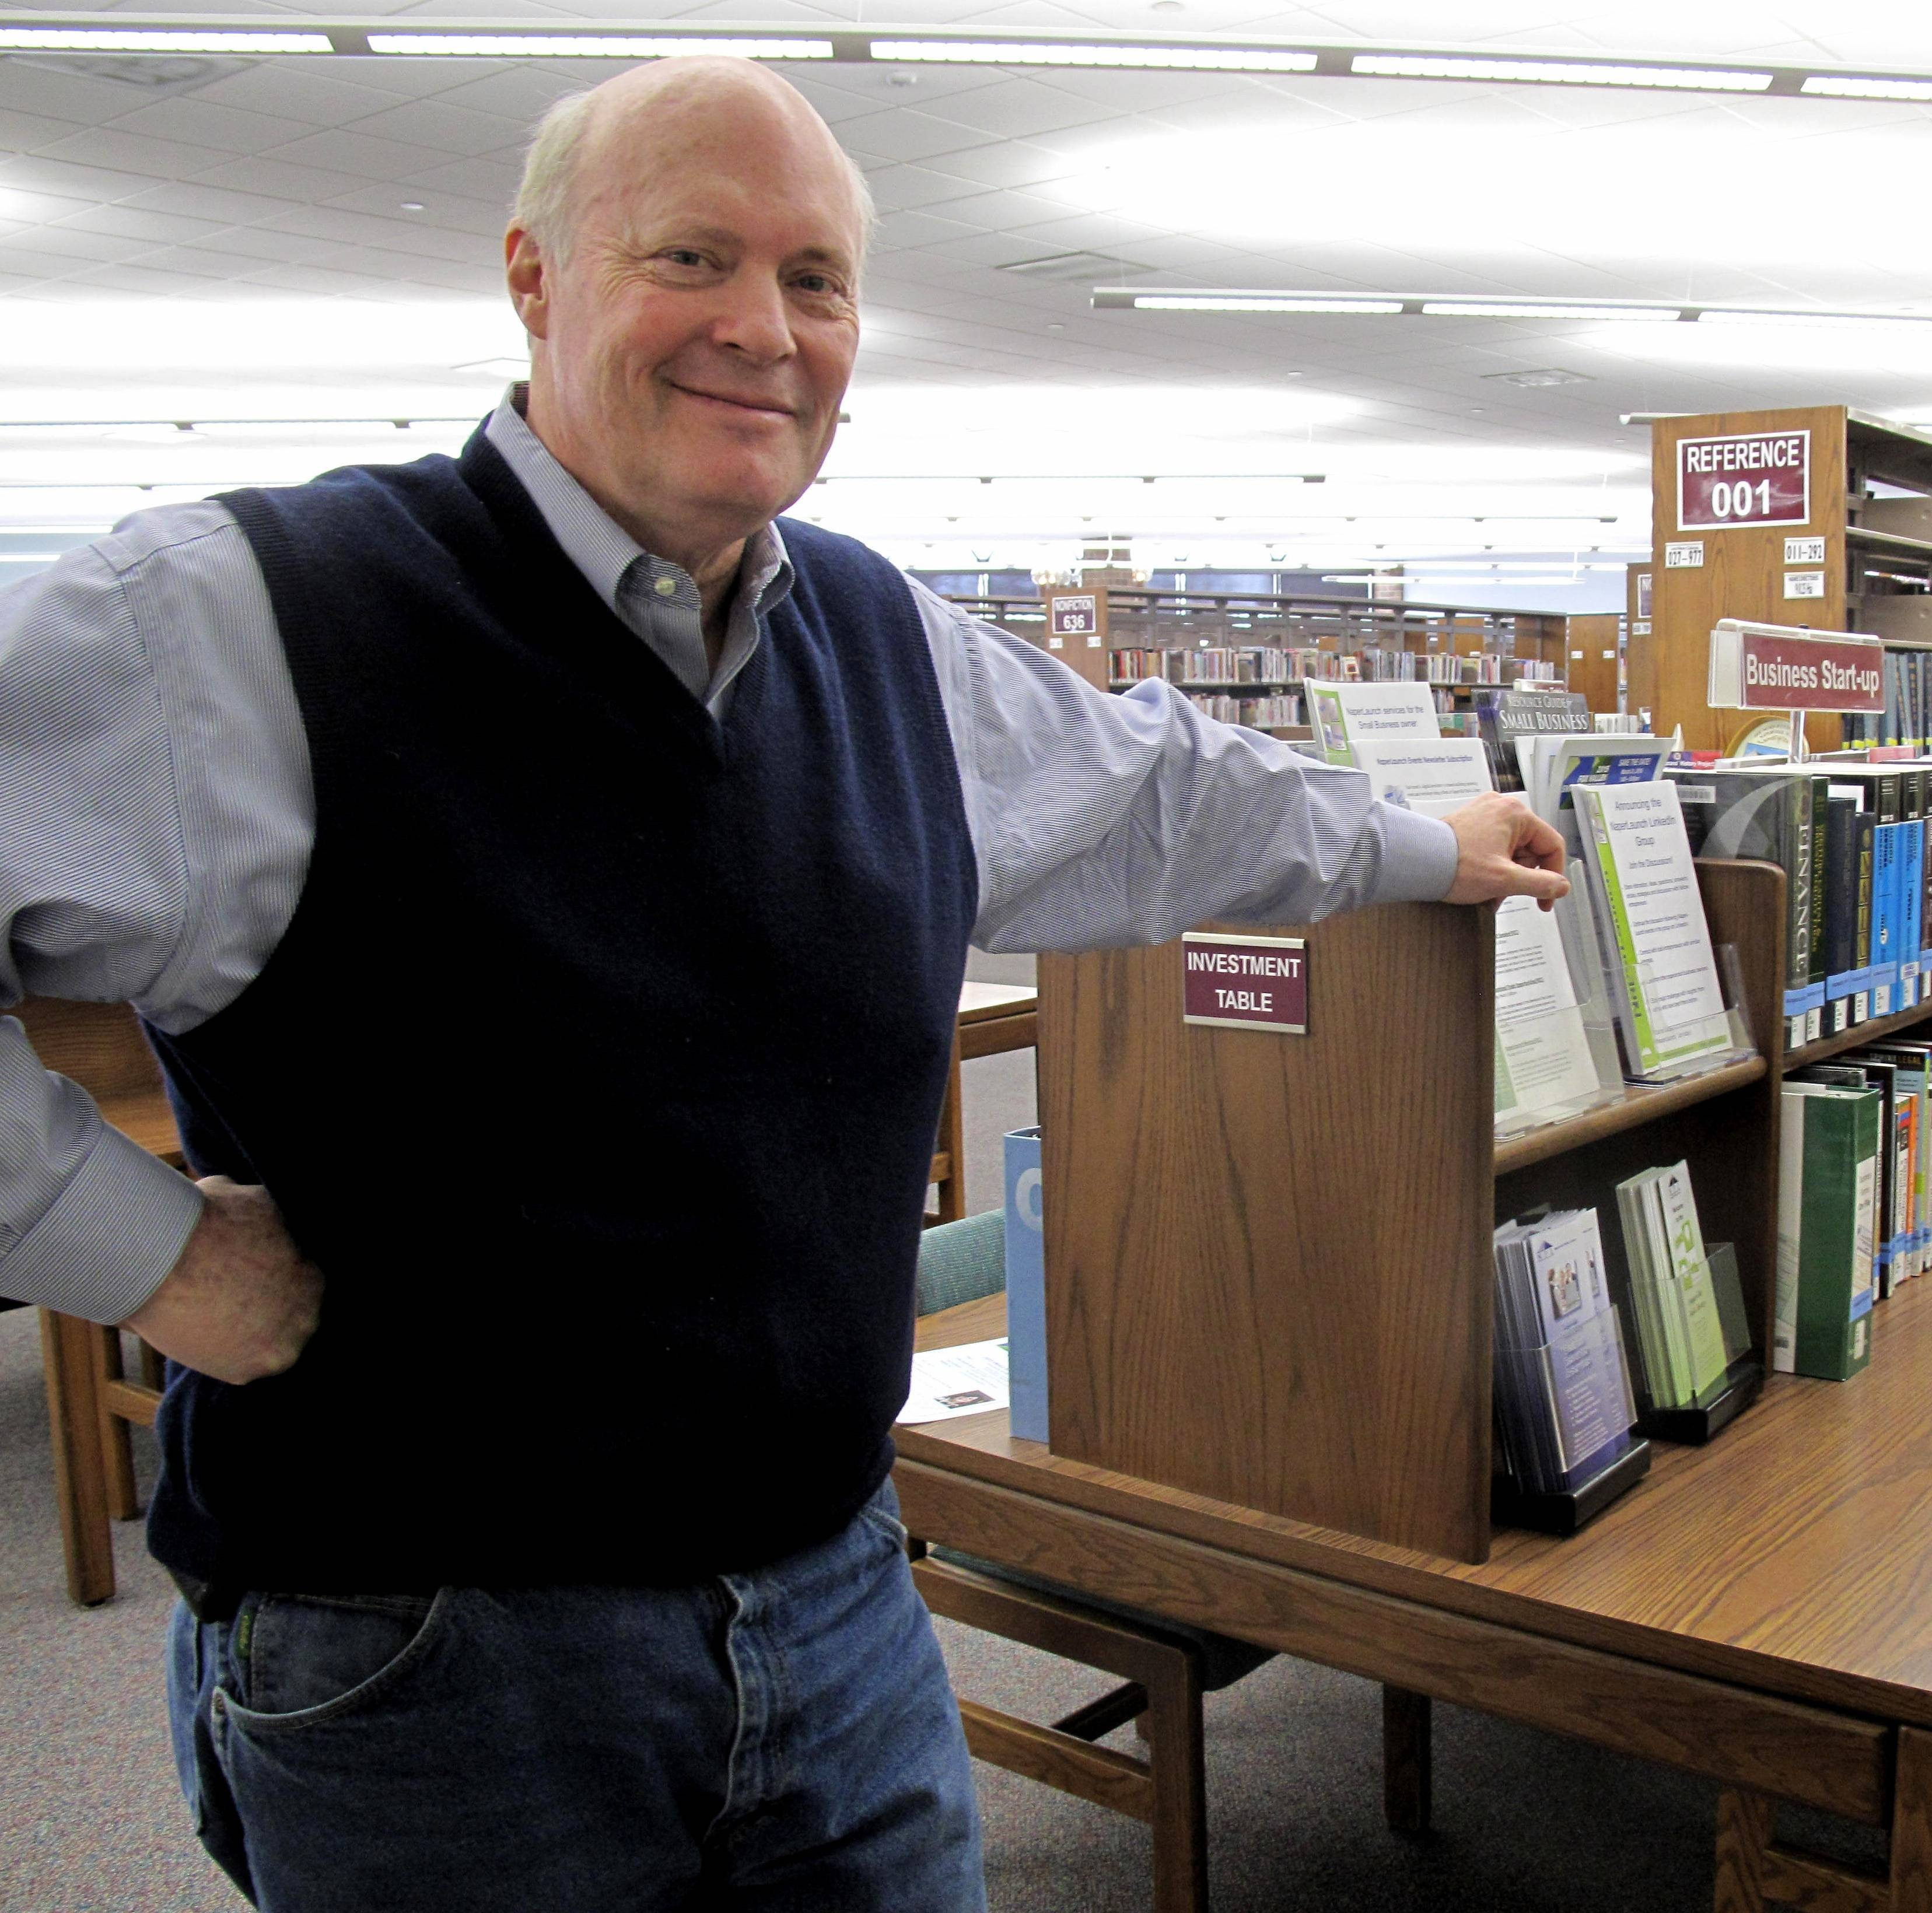 Naperville software startup helps library users plan businesses